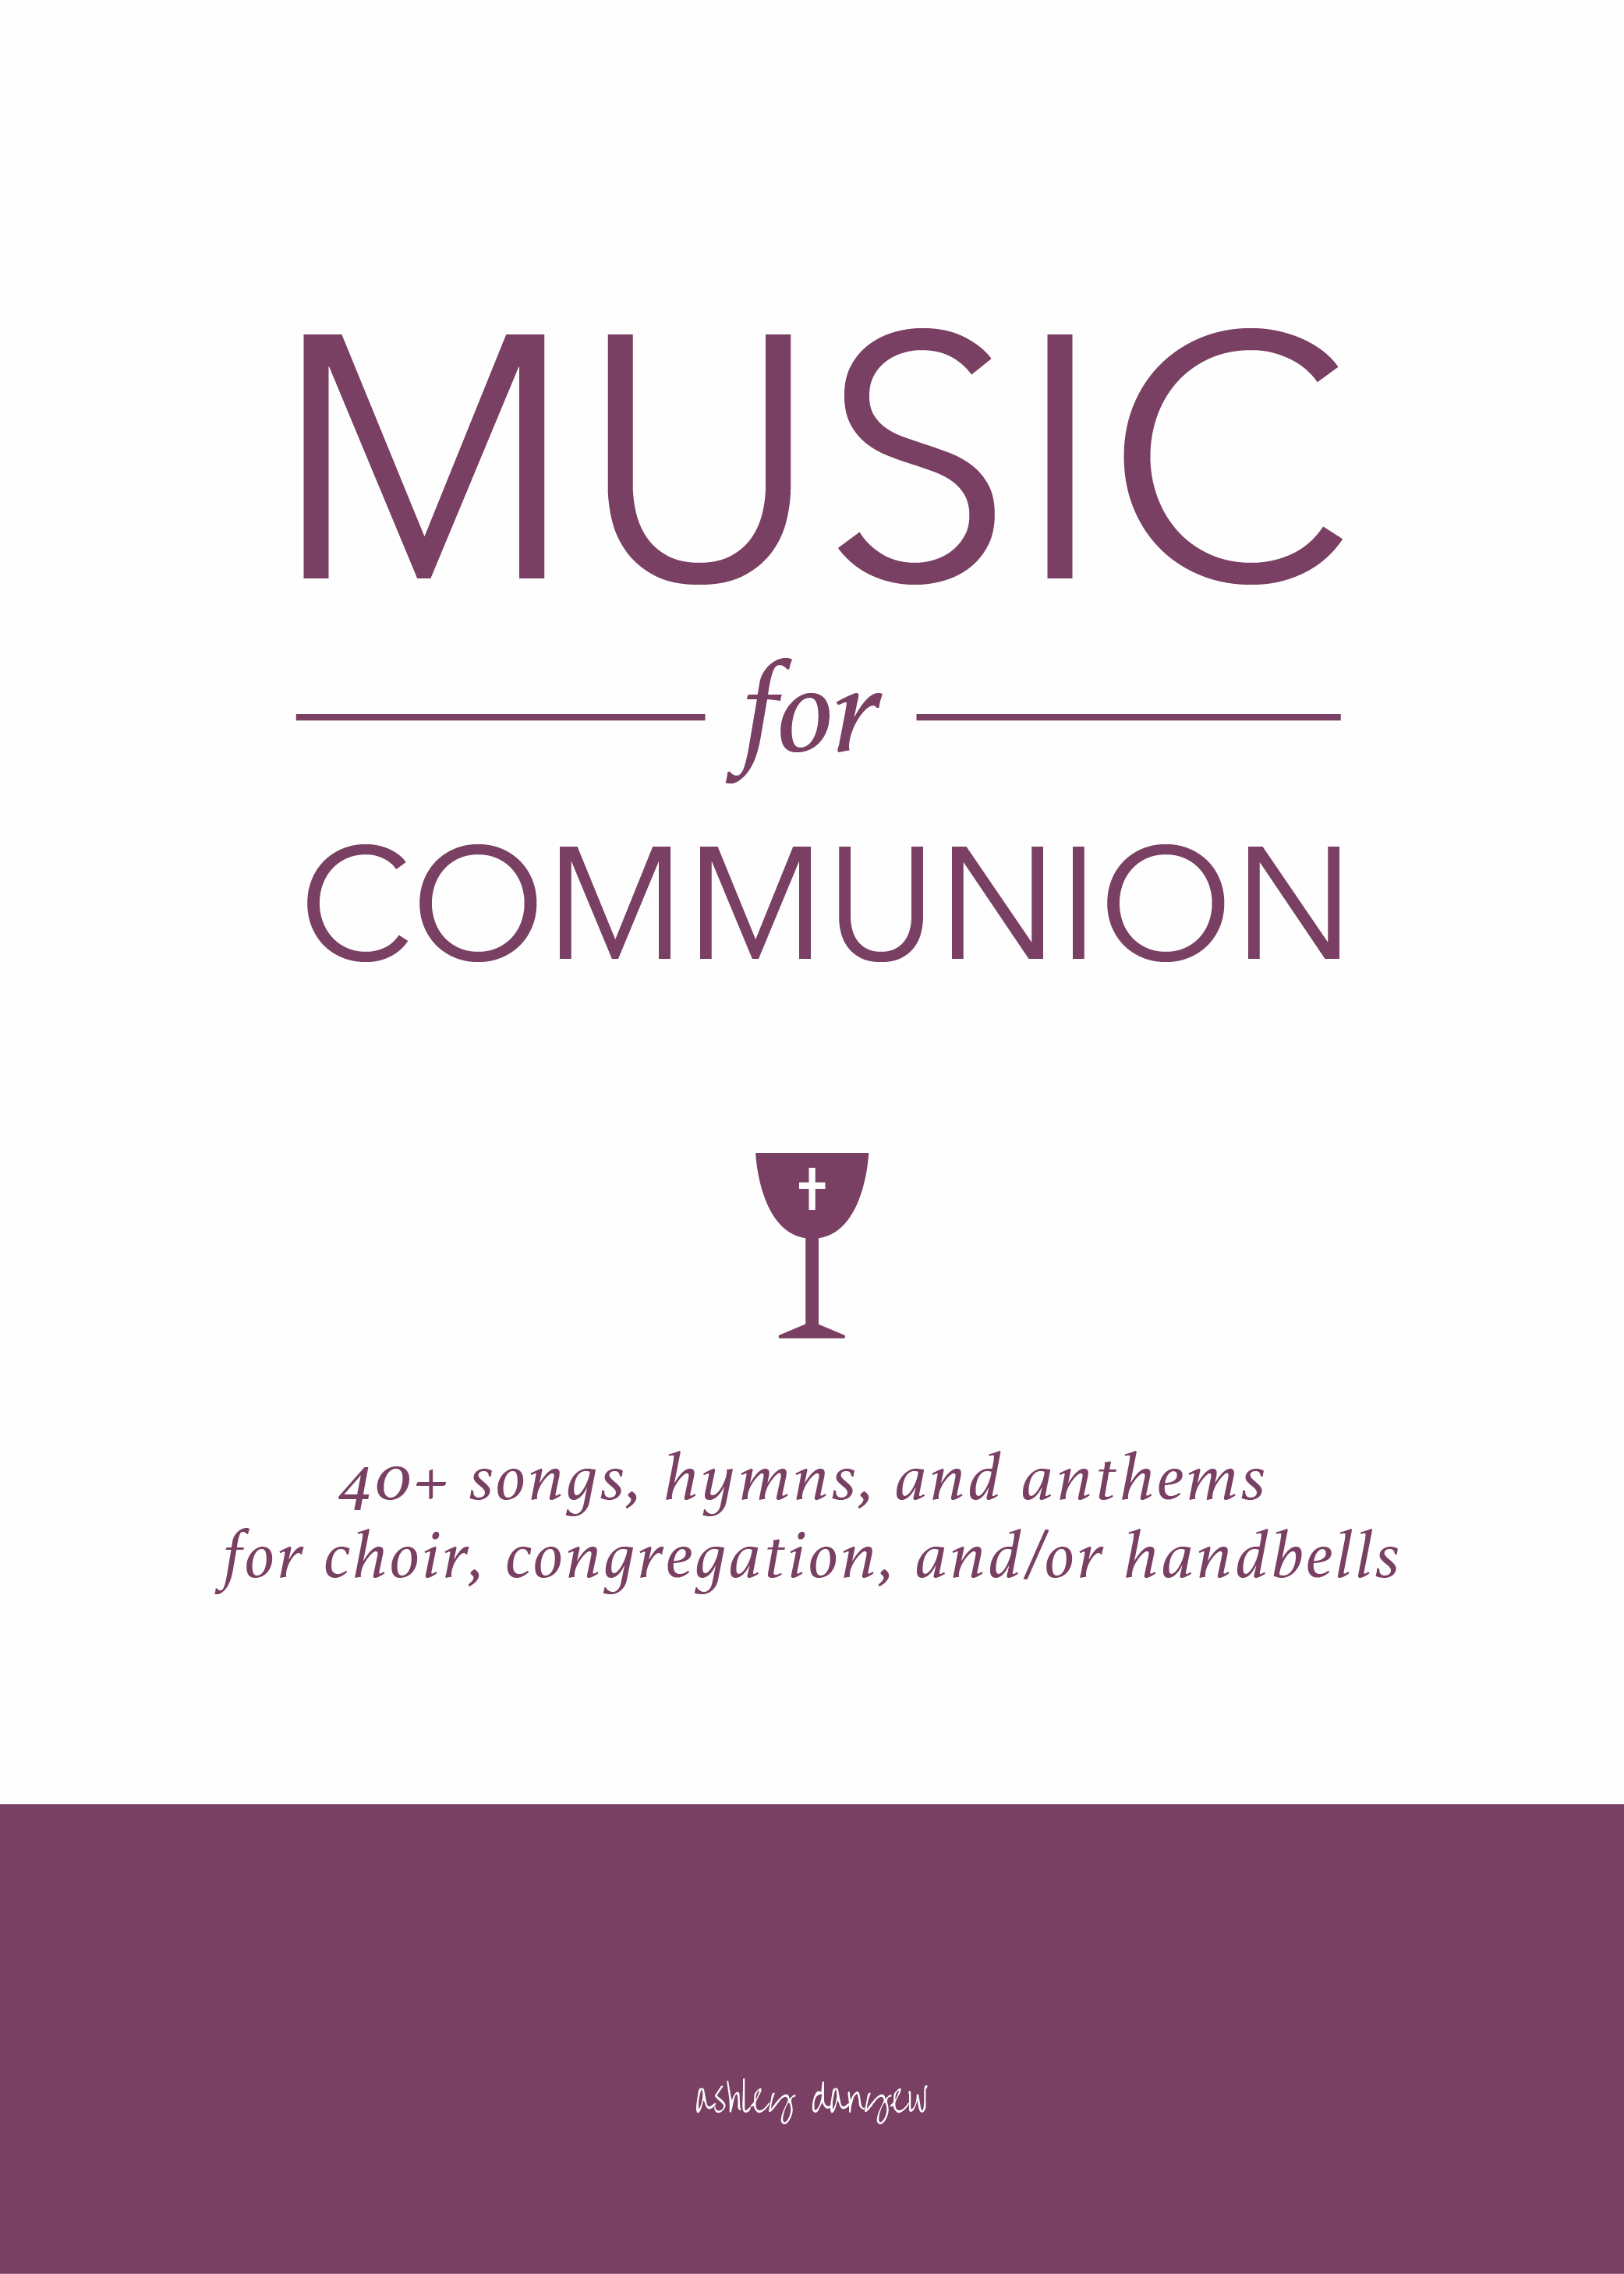 Music for Communion: 40+ Songs, Hymns, and Anthems | Ashley